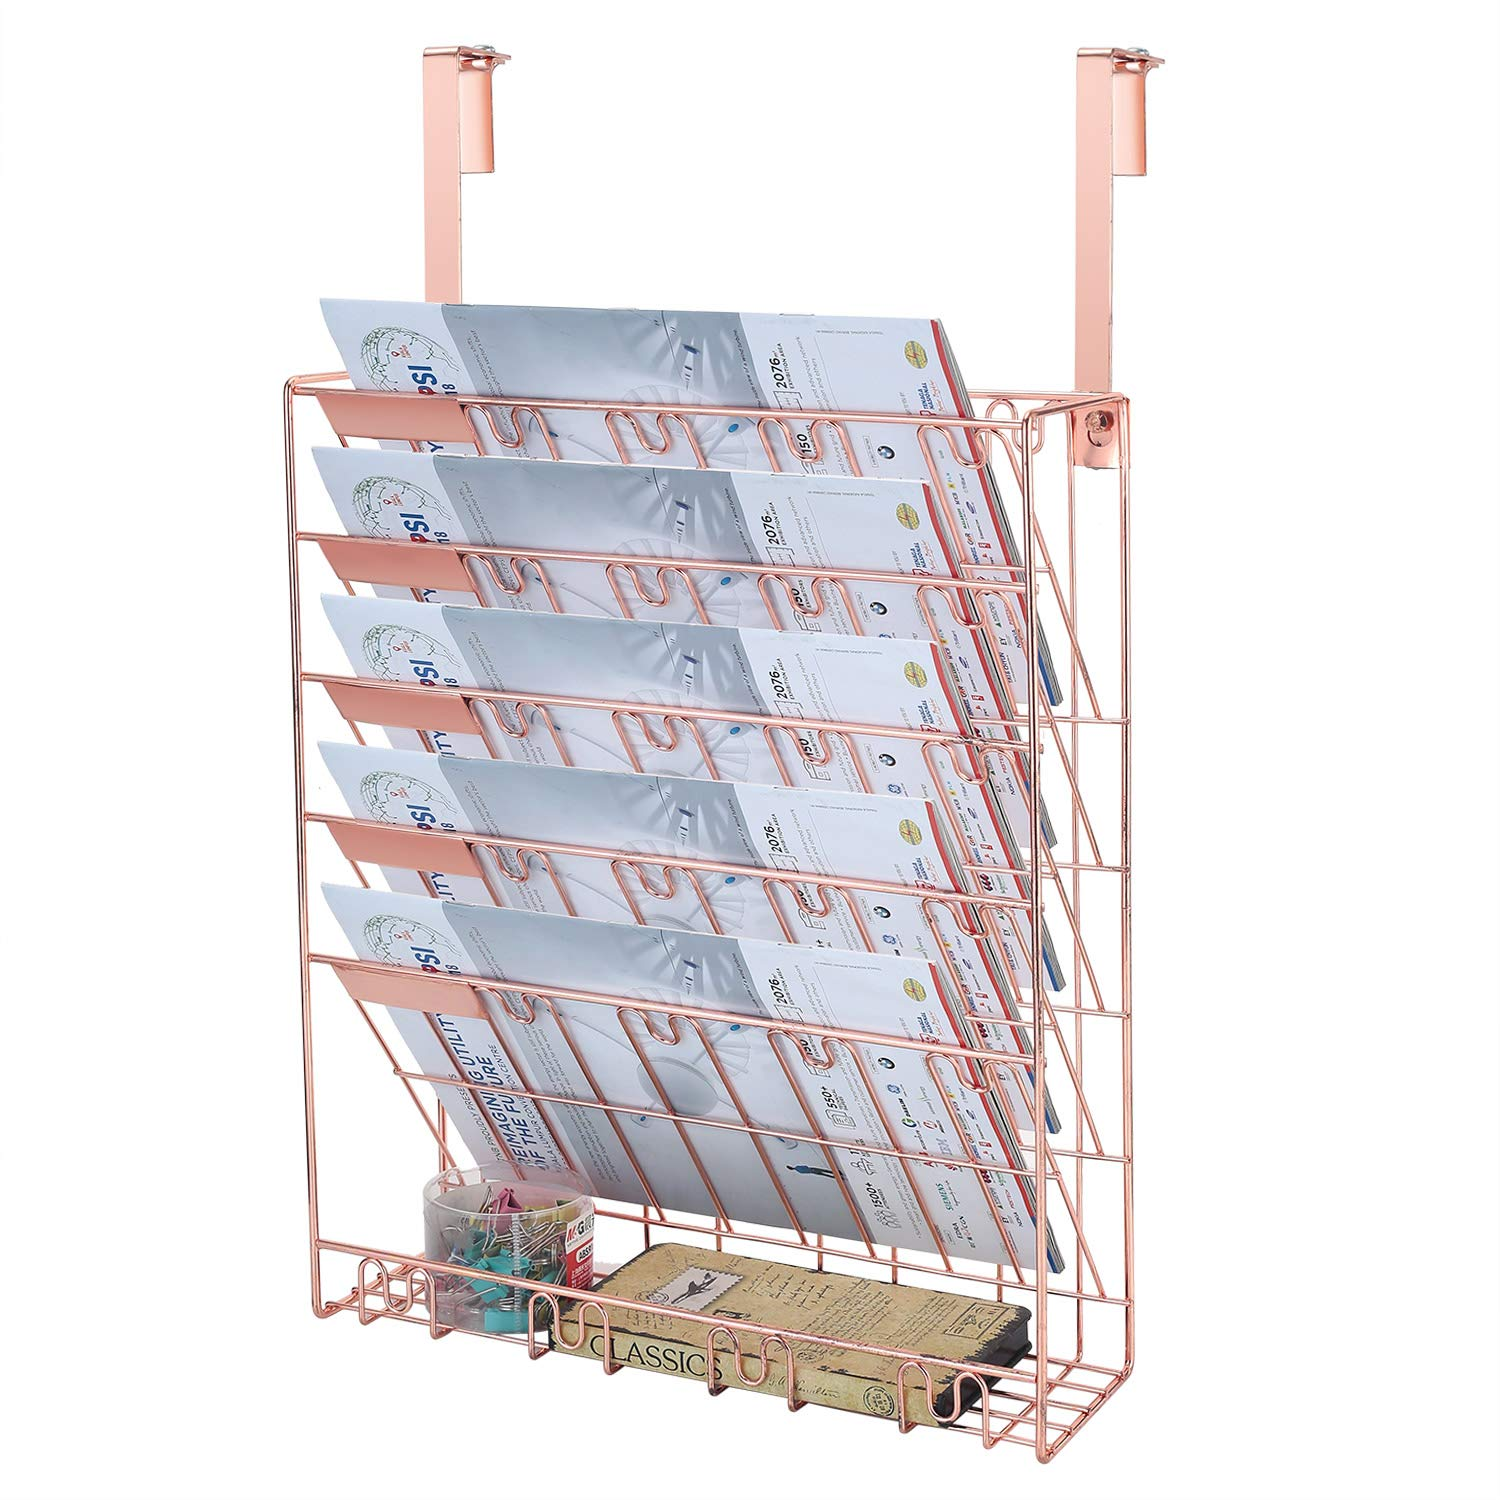 Samstar Wall File Holder Organizer, Mesh Metal Door Wall Mounted Paper Document Holder for Office Home 6 Tier,Rose Gold by samstar